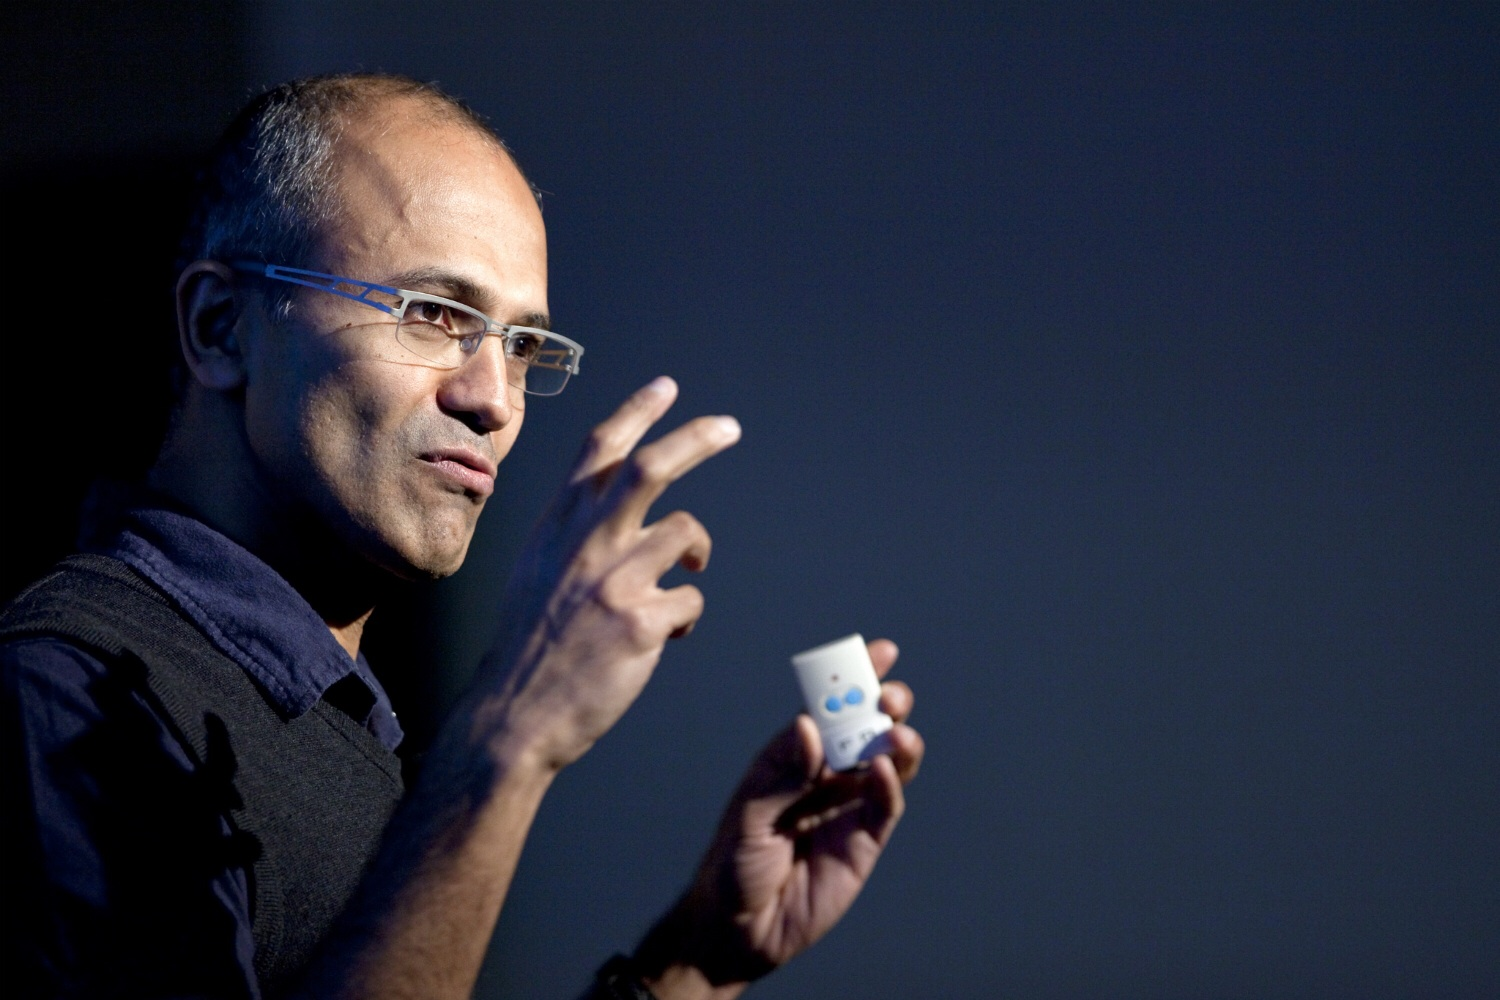 Microsoft's Satya Nadella presents at an event featuring the company's Bing search engine on Dec. 15, 2010.